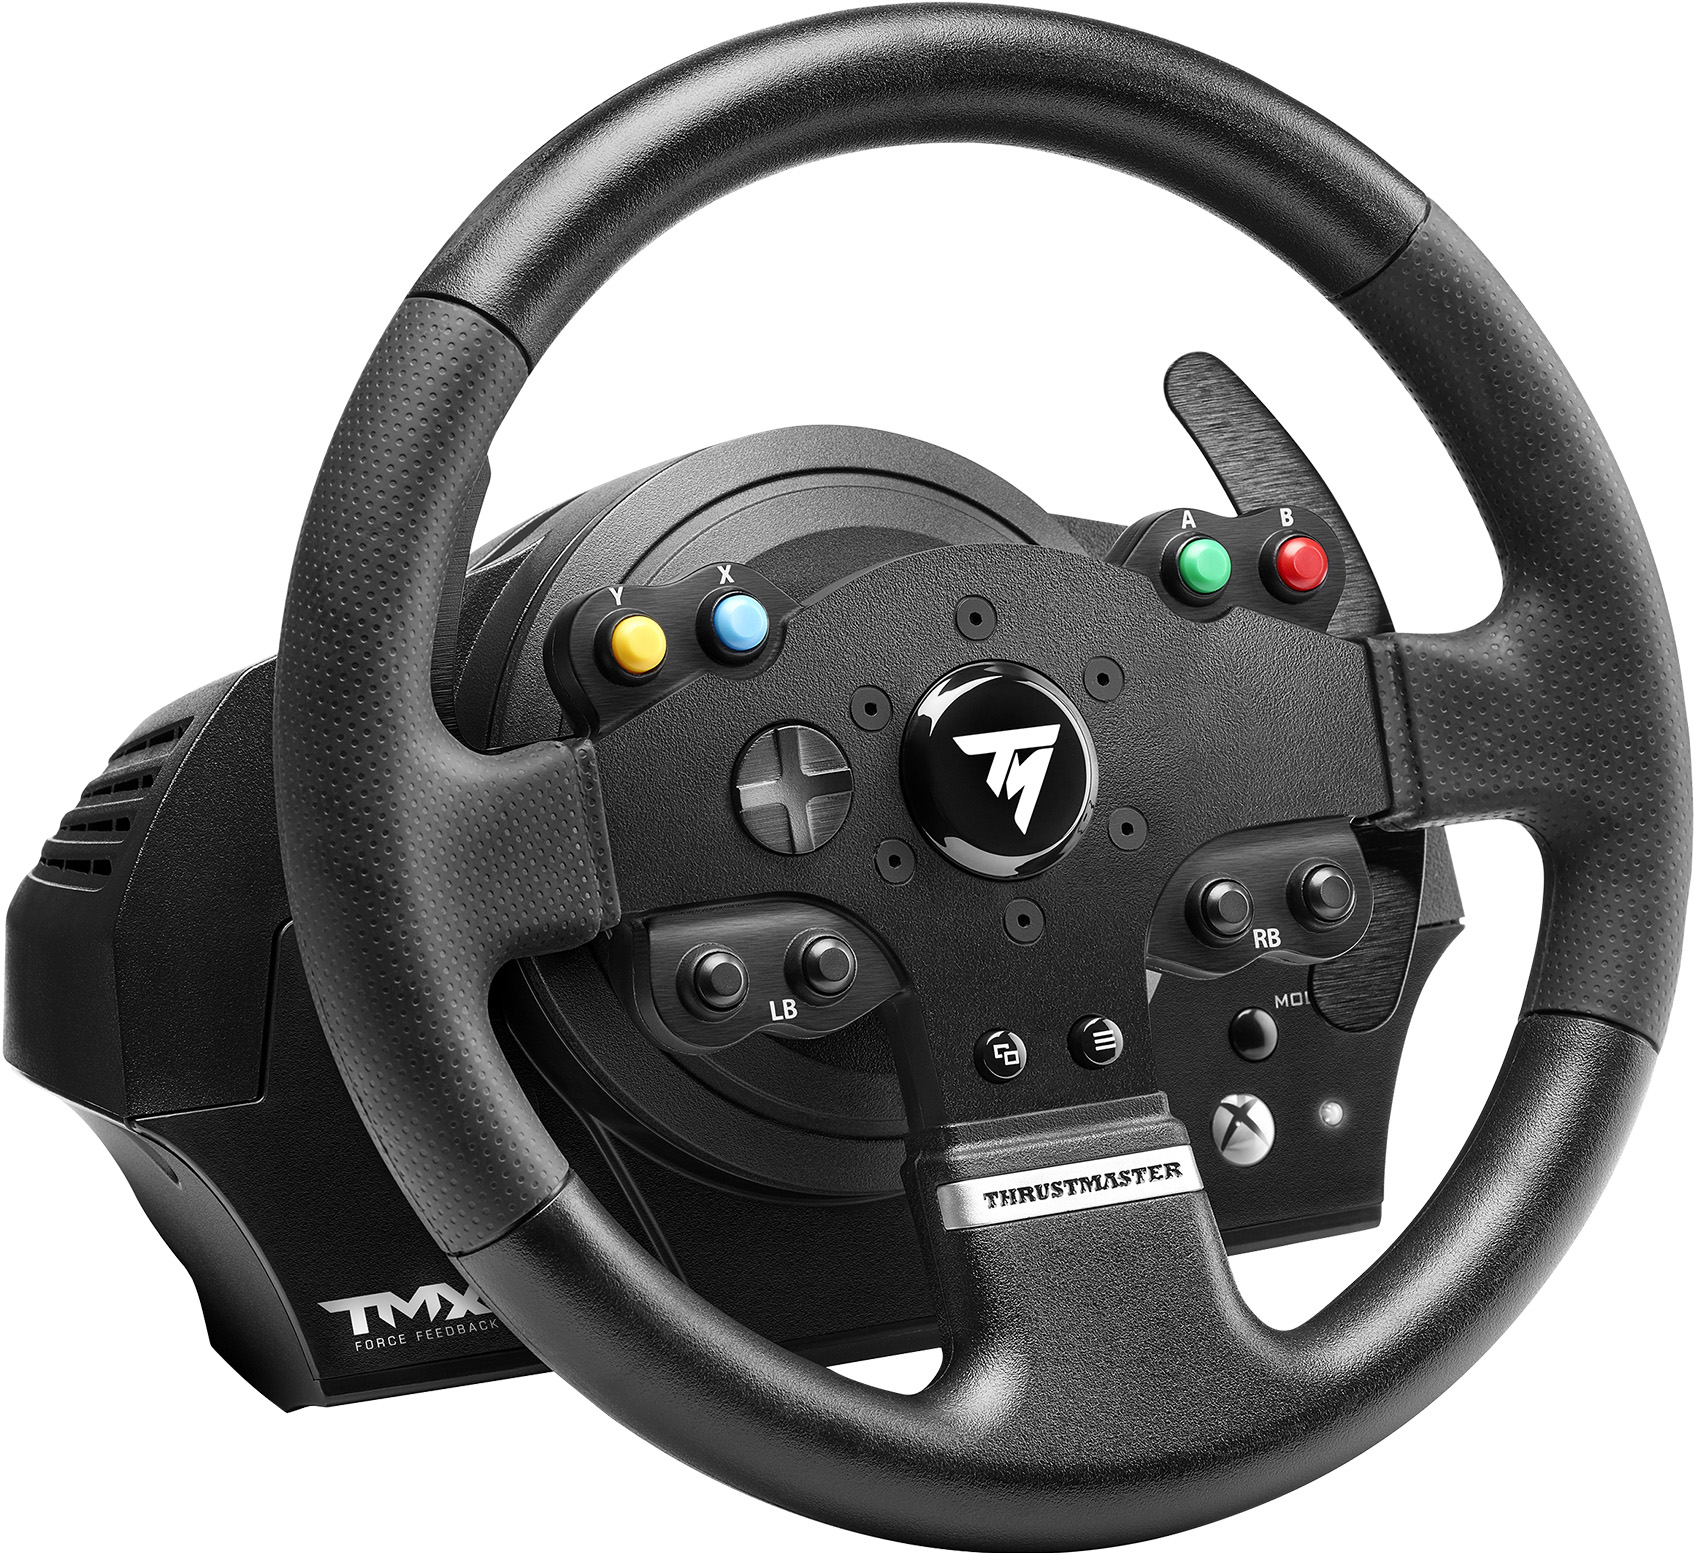 Thrustmaster TMX Force Feedback Racing Wheel for Xbox One, Xbox Series X S and PCs